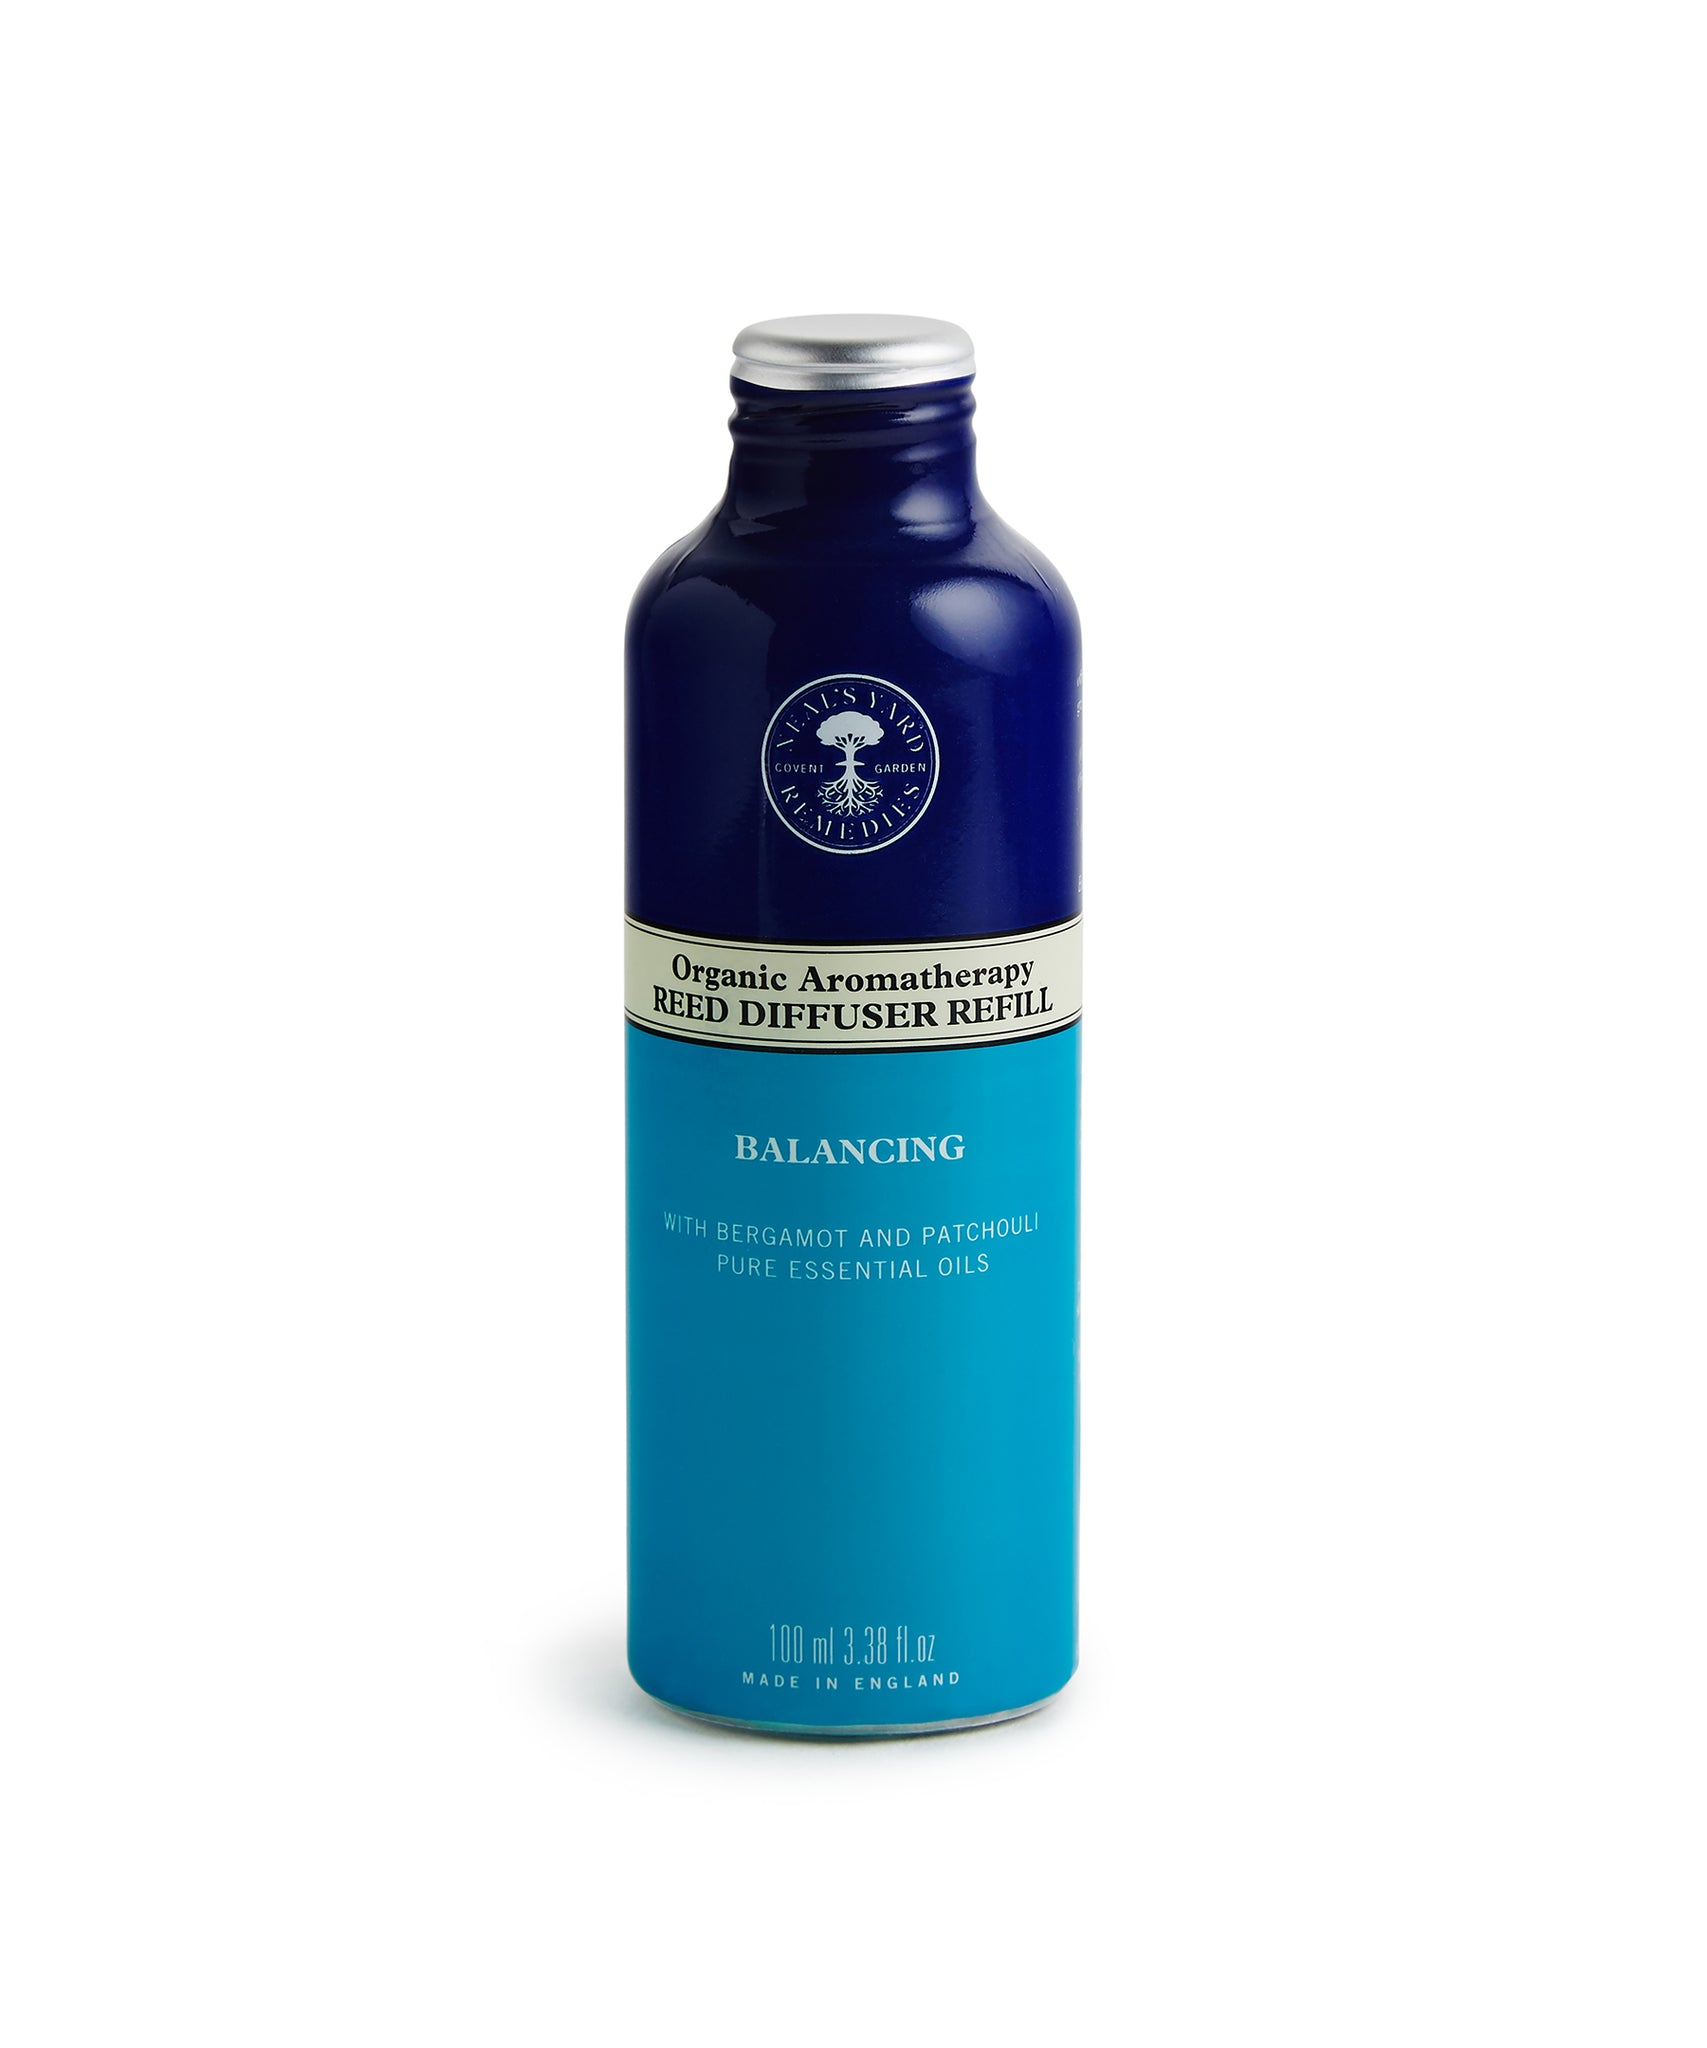 Organic Aromatherapy Diffuser Refill - Balancing by Neal's Yard Remedies